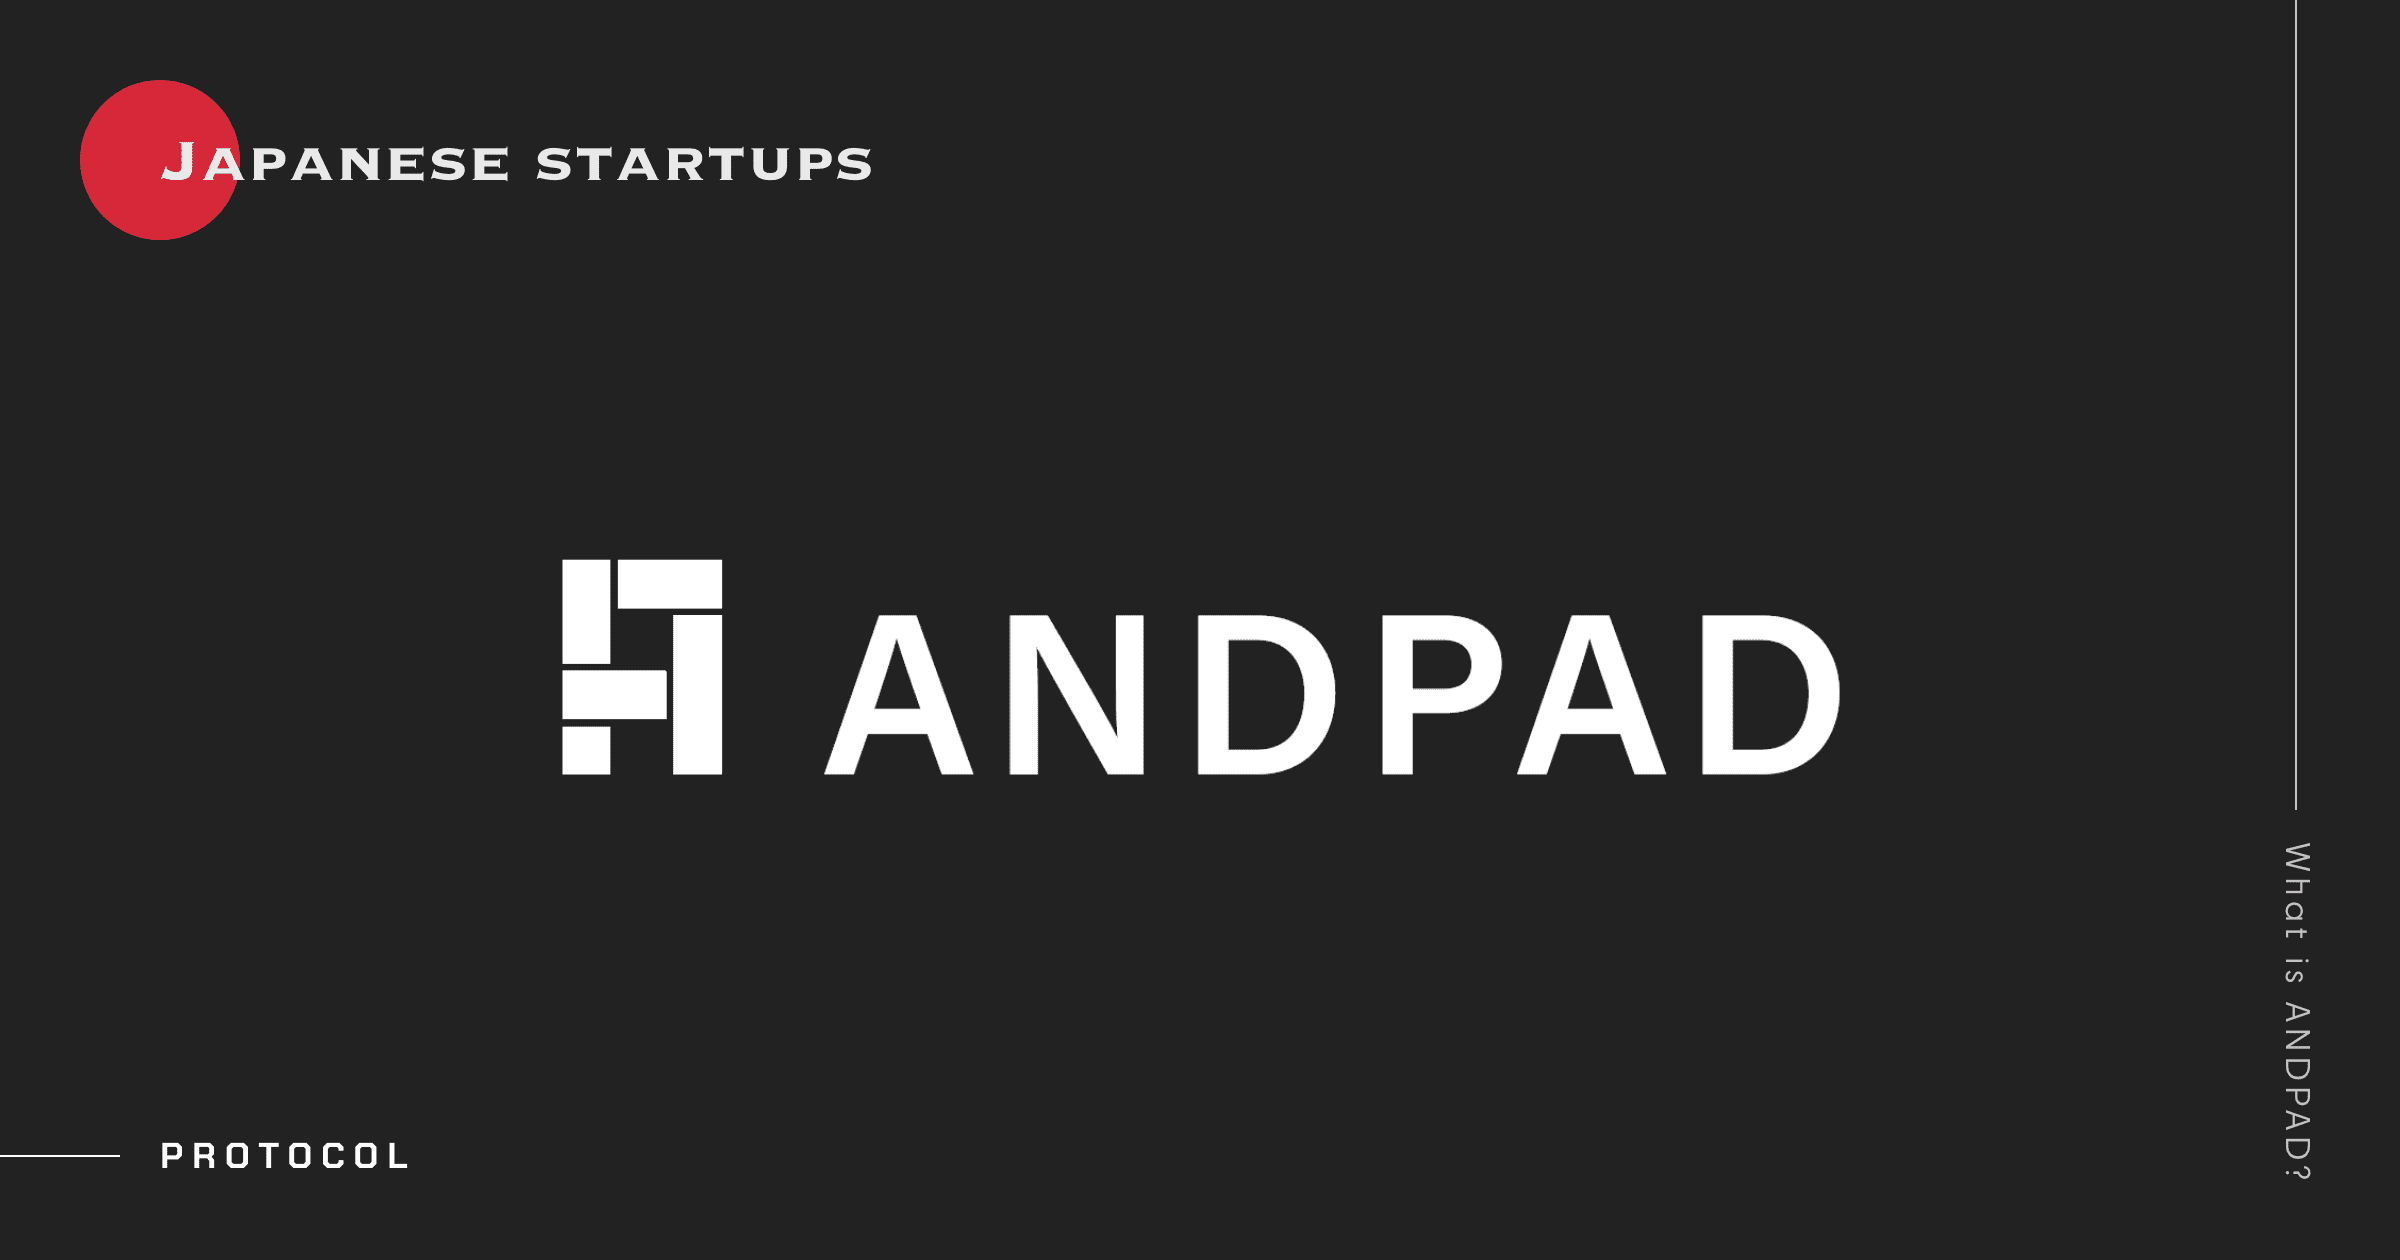 Japanese Startups: What Is ANDPAD?